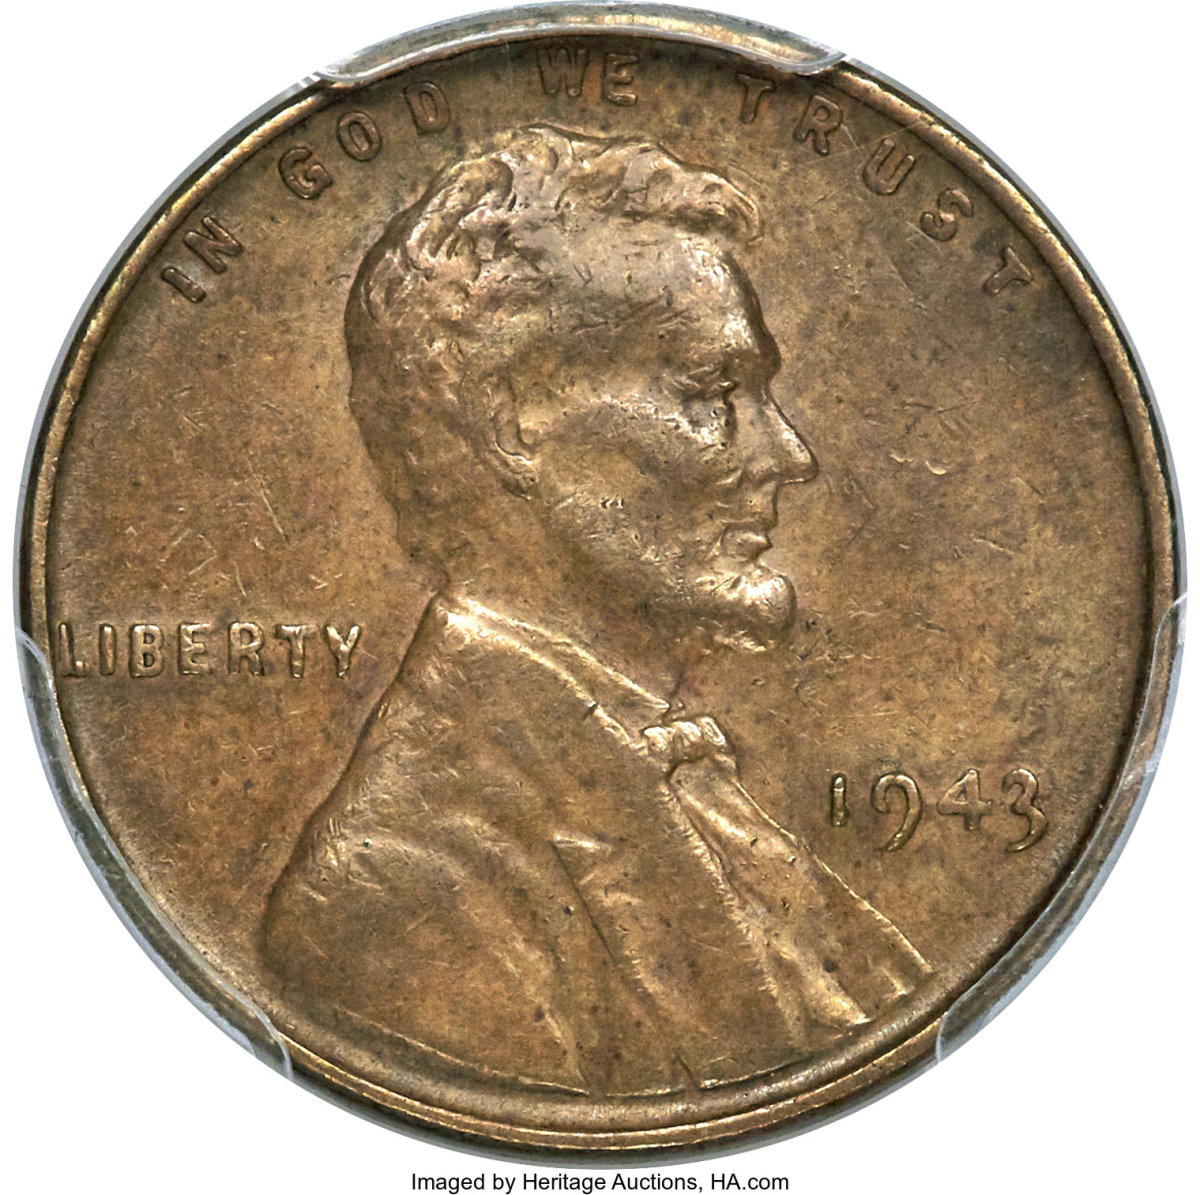 Featured as the top lot, this 1943 Lincoln Cent struck on a bronze planchet realized $186,000. (Image courtesy of Heritage Auctions)